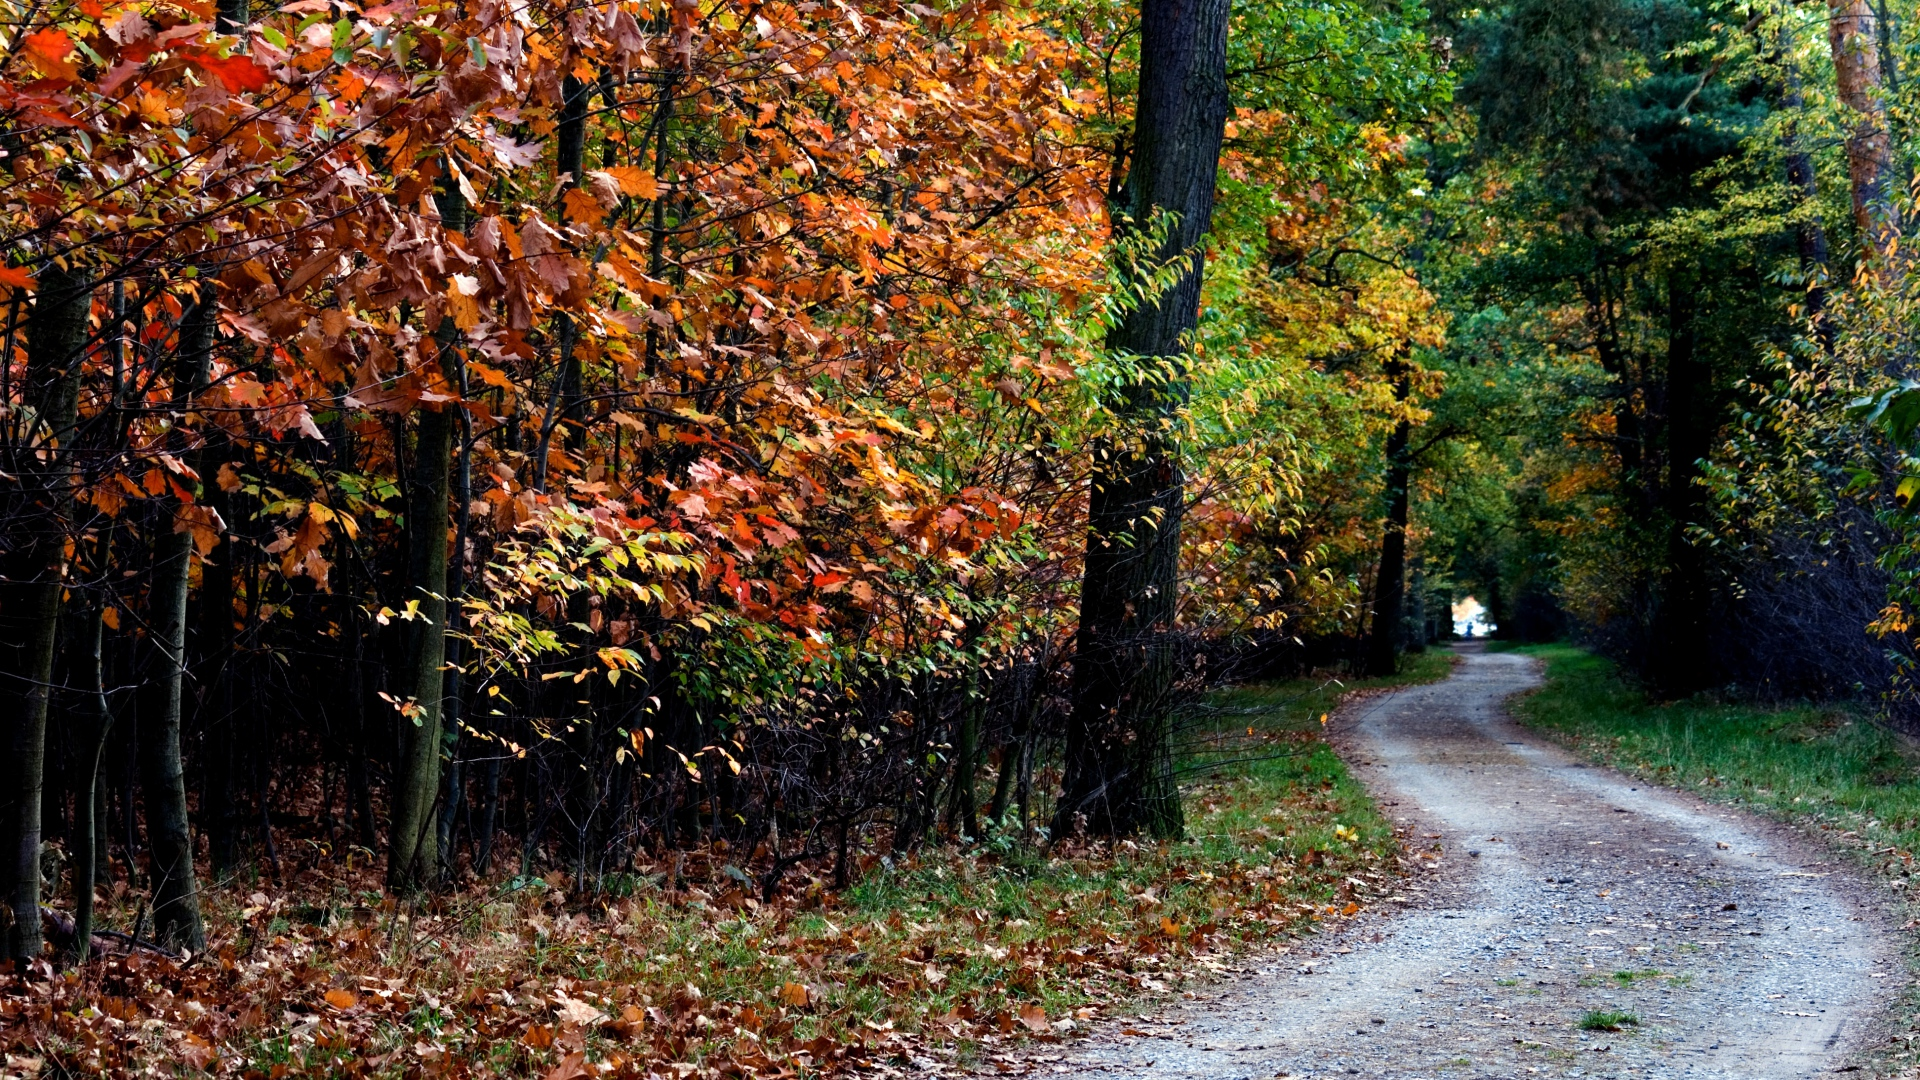 Autumn-Trail-Trees-Foliage-1920x1080-Need-iPhone-S-Plus-Background-for-IPhoneSP-wallpaper-wp3402719